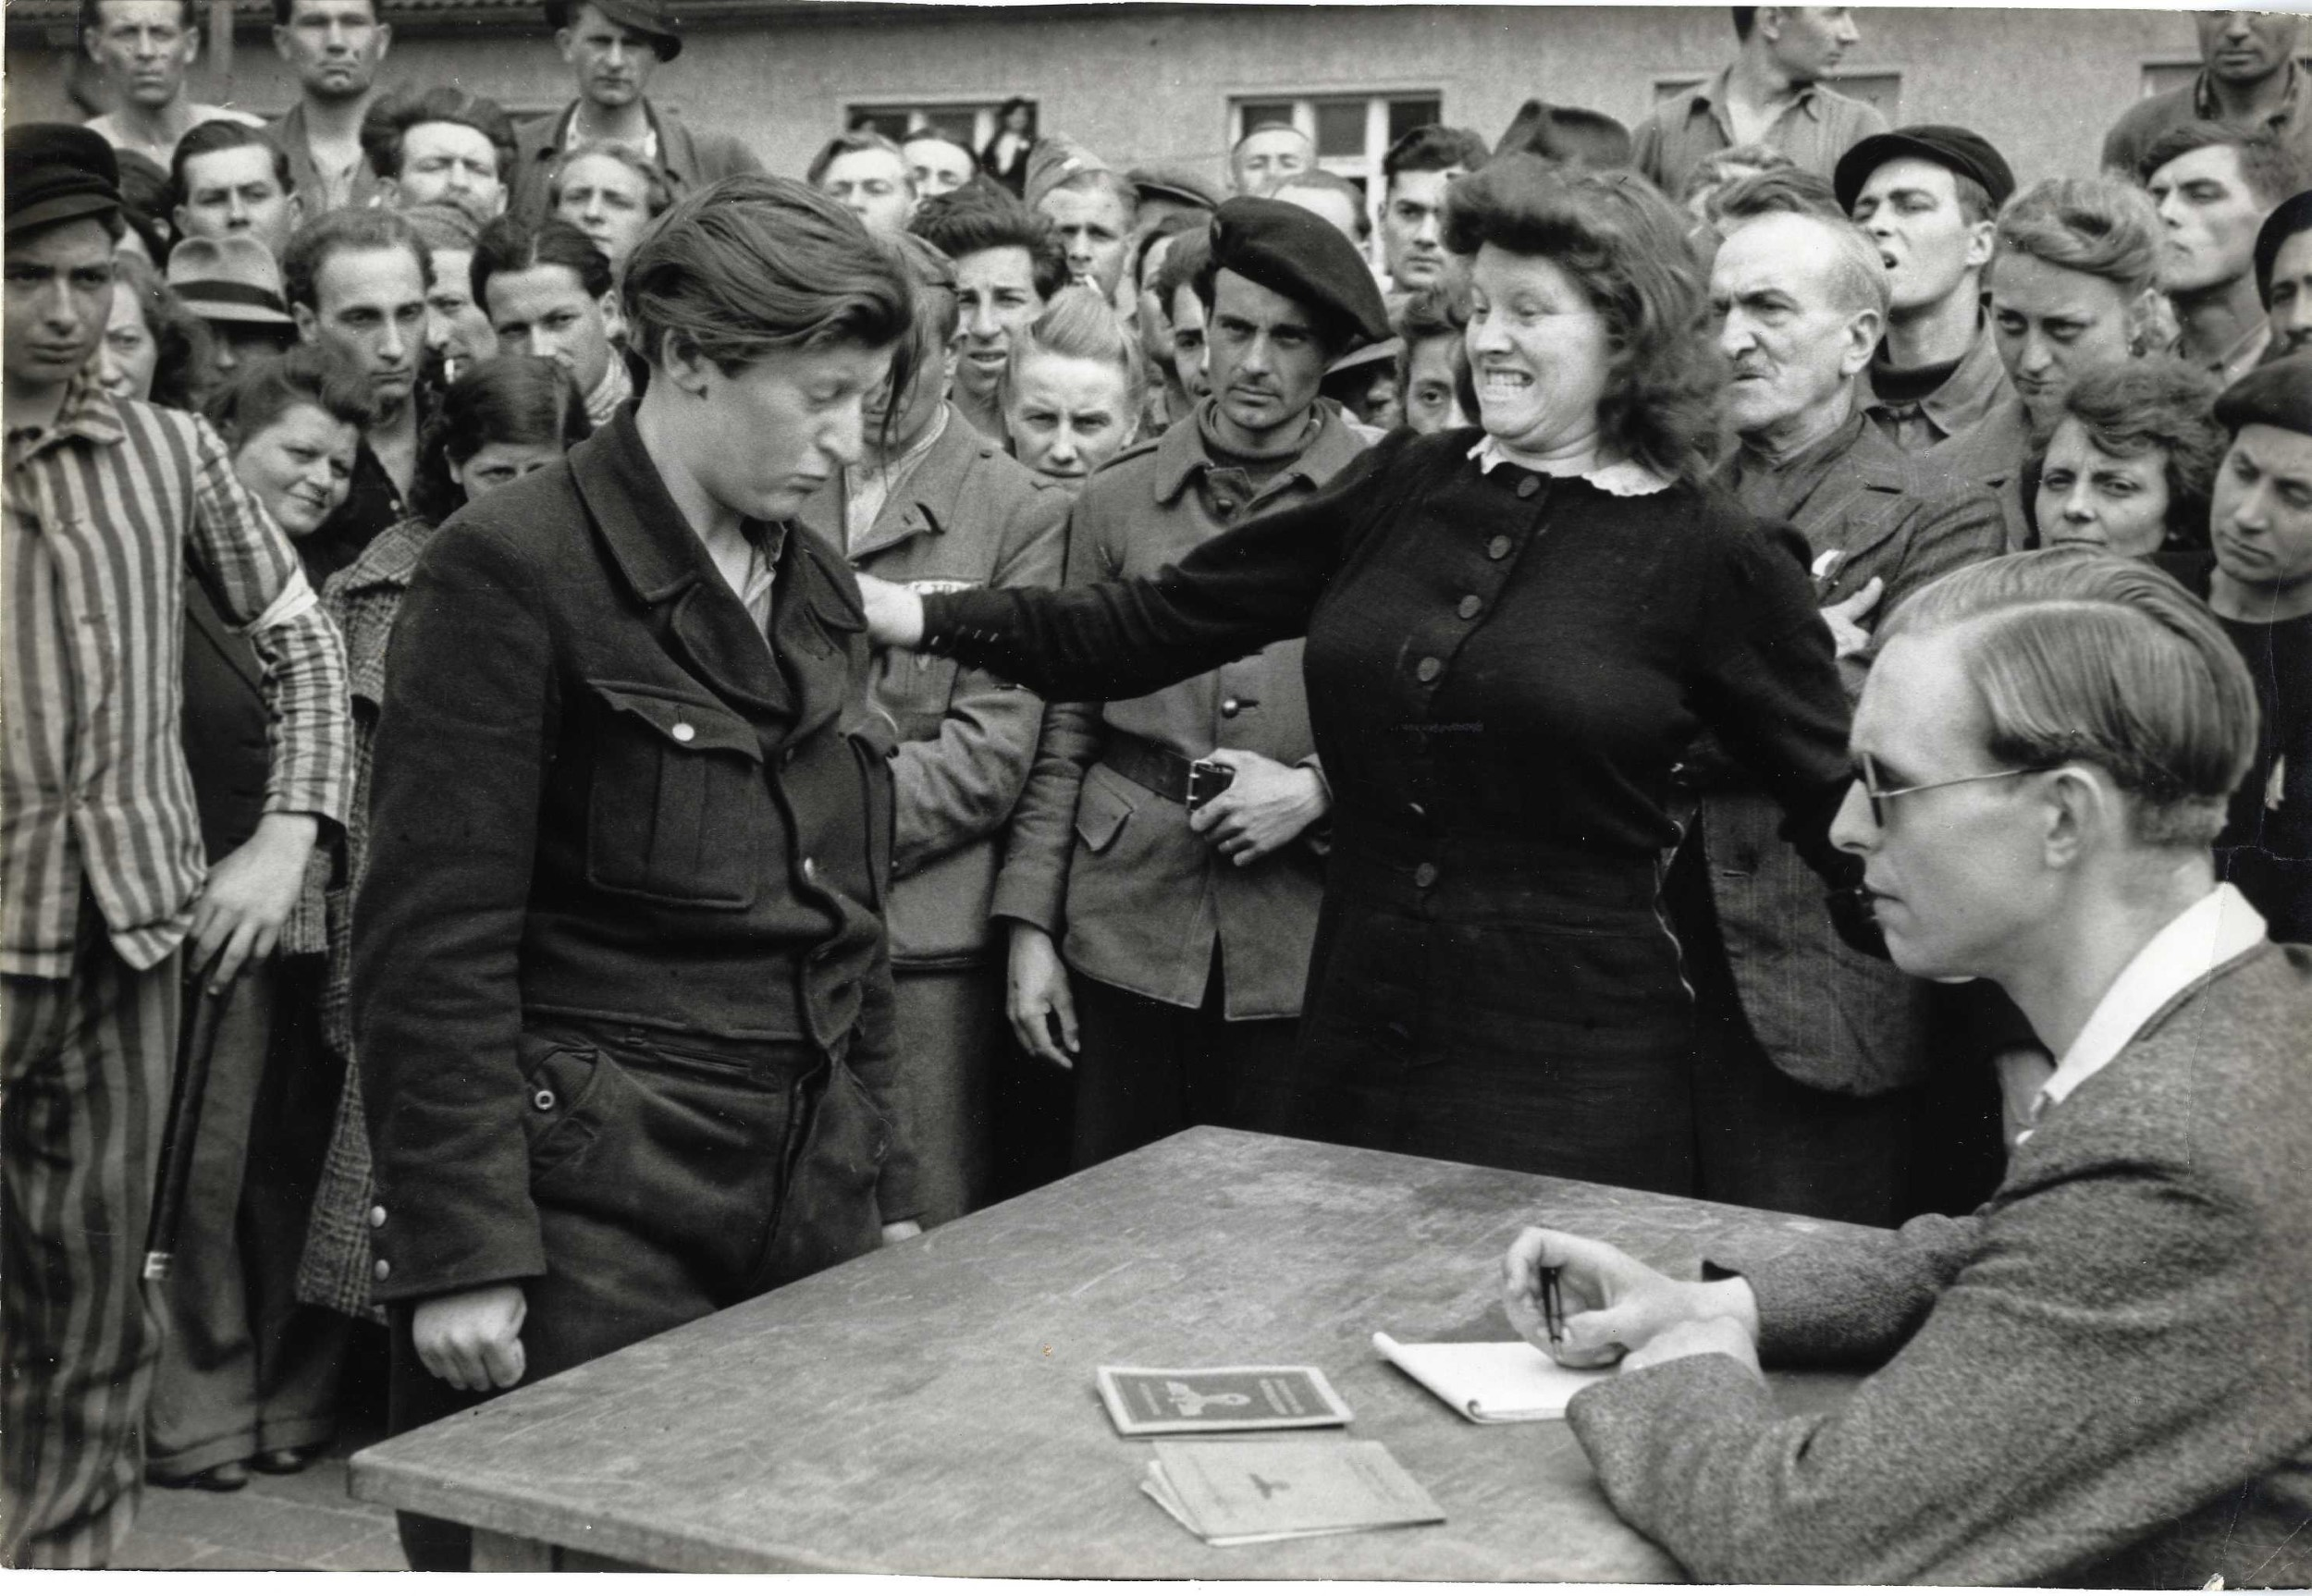 A refugee recognizes her Gestapo informant in a displaced persons camp,  Dessau, Germany, 1945